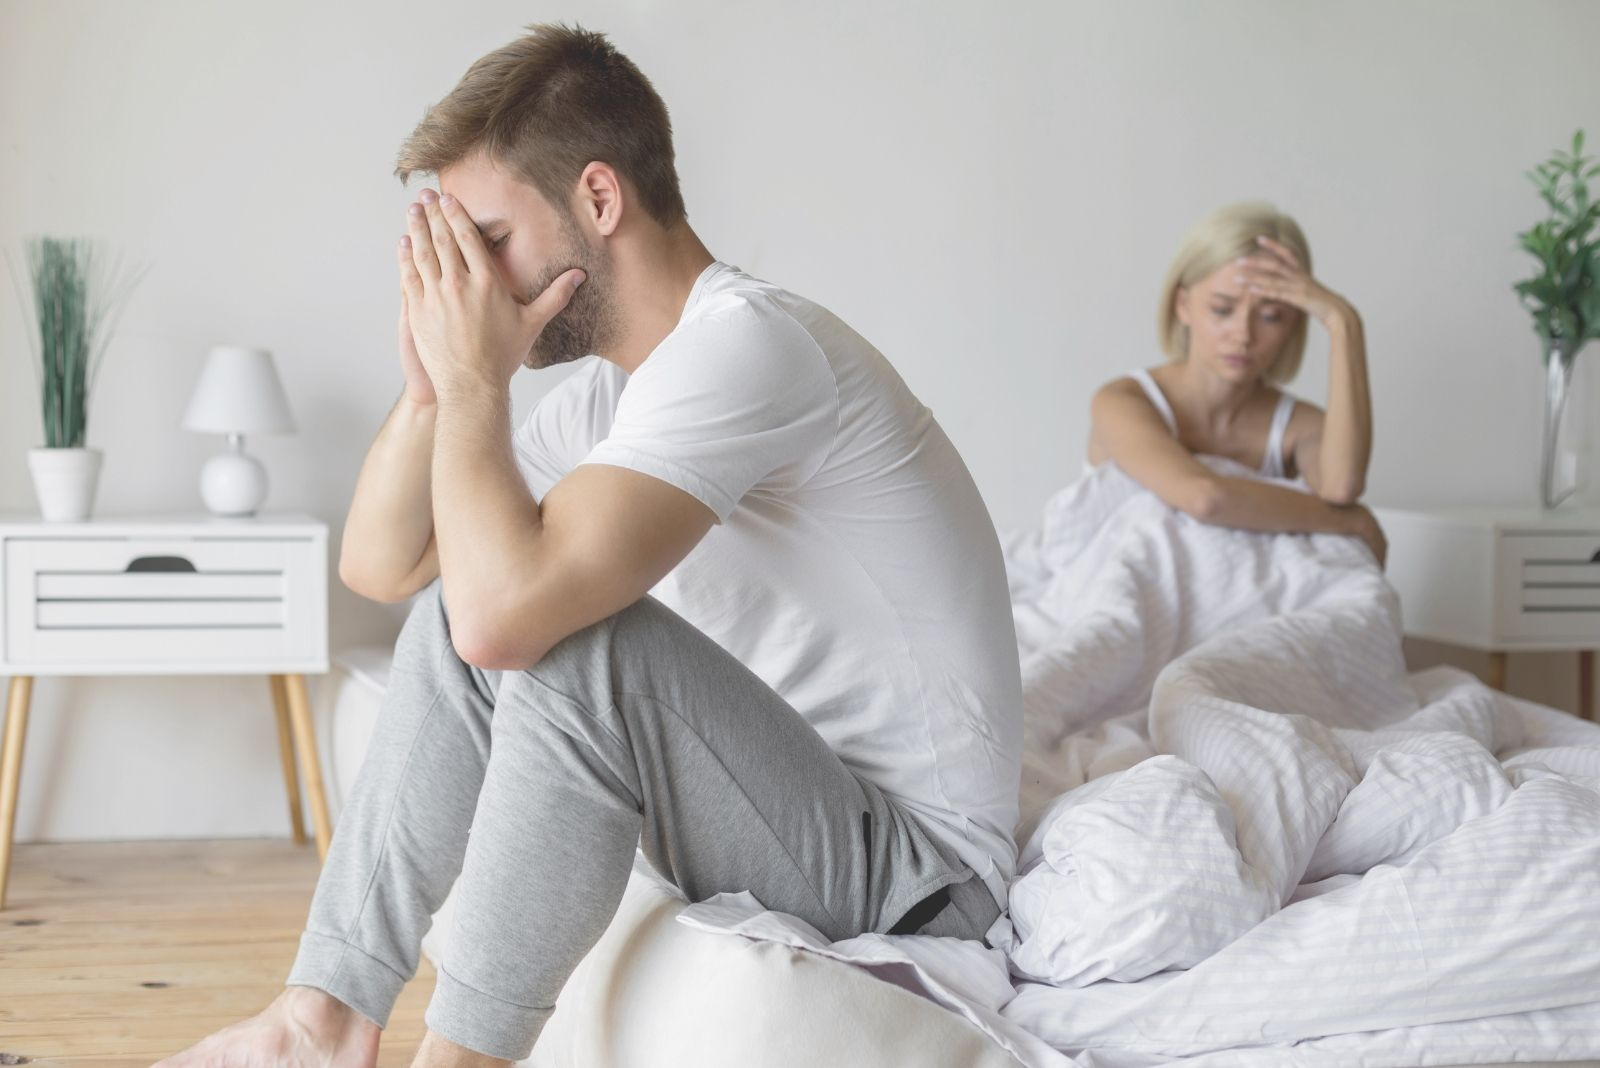 couple having a family problem sitting in bed trying to resolve inside the bedroom